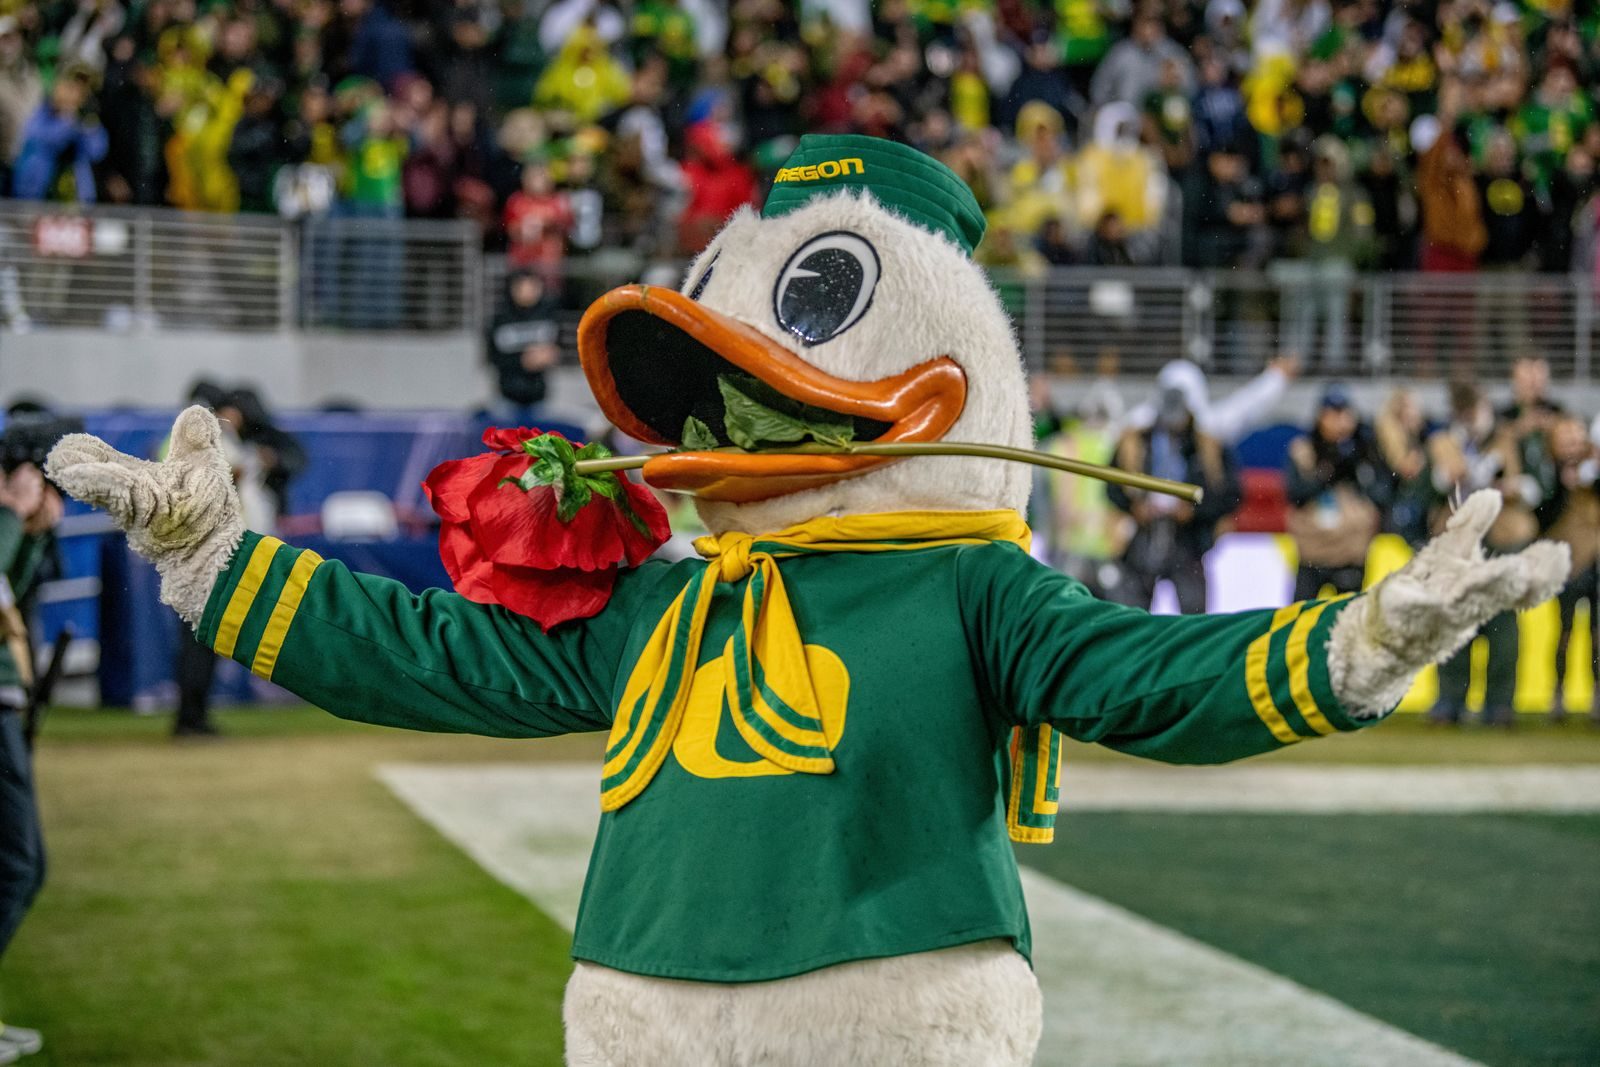 Oregon's mascot, The Duck, with a rose in his mouth hinting Oregon is going to win and move onto the Rose Bowl.  The University of Oregon Ducks defeated the University of Utah Utes 37-15 for the Pac 12 Championship Friday night at Levi's Stadium. Oregon's running back CJ Verdell, #7, rushed for 203 all-purpose yard along with three touchdowns for the night. Verdell was named the games M-V-P for his performace. Oregon's safey Brady Breeze, #25, contributed 9 tackles and one interception. Oregon's defensive end Kayvon Thibodeaux, #5, sacked Utah's quarterback Tyler Huntly, #1, for a total of three times. Oregon's quarterback Justin Herbert, #10, passed for 193 yards with one touchdown. The Oregon Ducks will represent the Pac 12 for the upcoming Rose Bowl game in the new year. Photo by Jeffrey Price